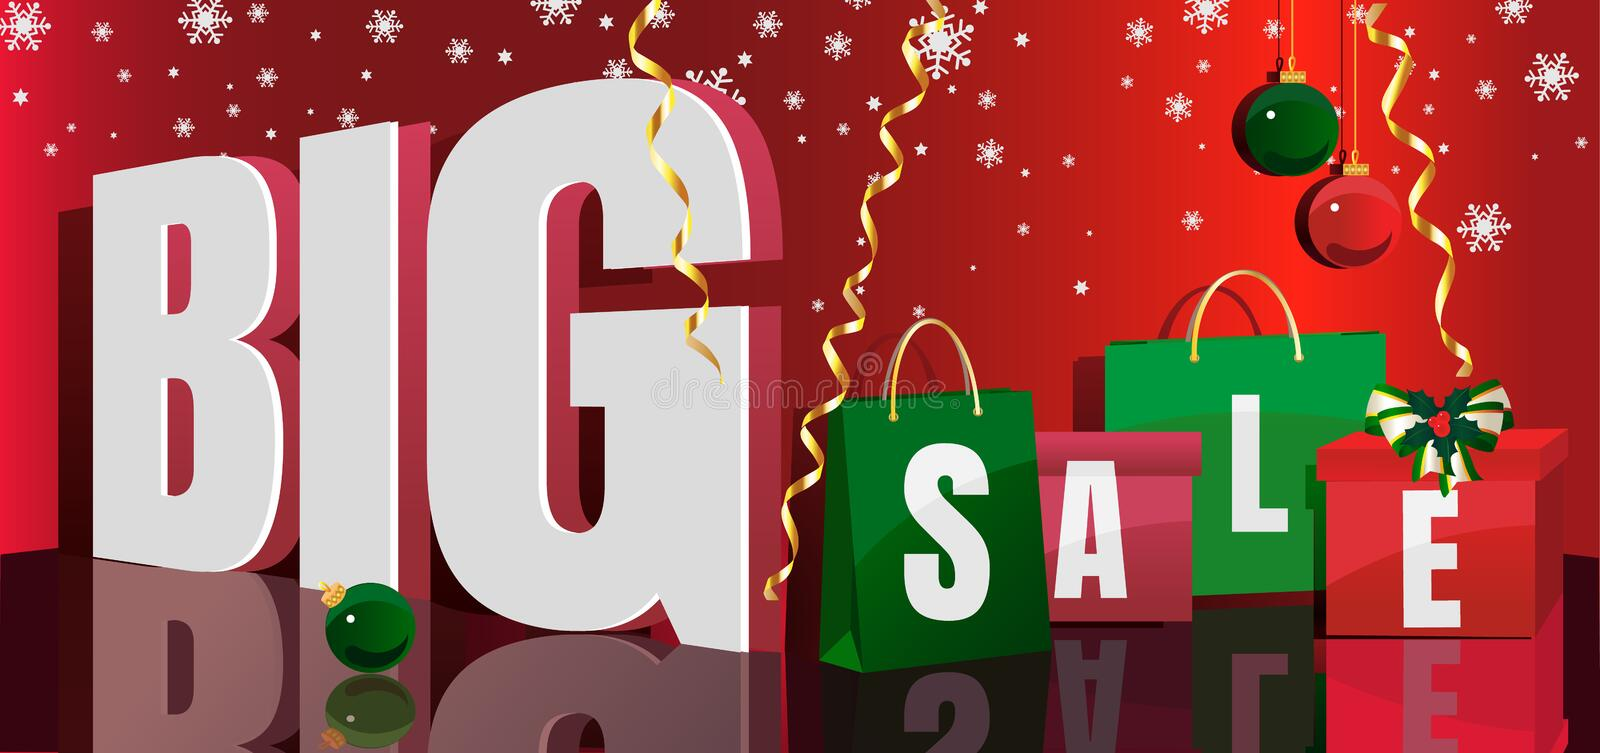 Christmas design concept with Christmas bags and boxes on a red gradient background and the words about the big sale royalty free stock image